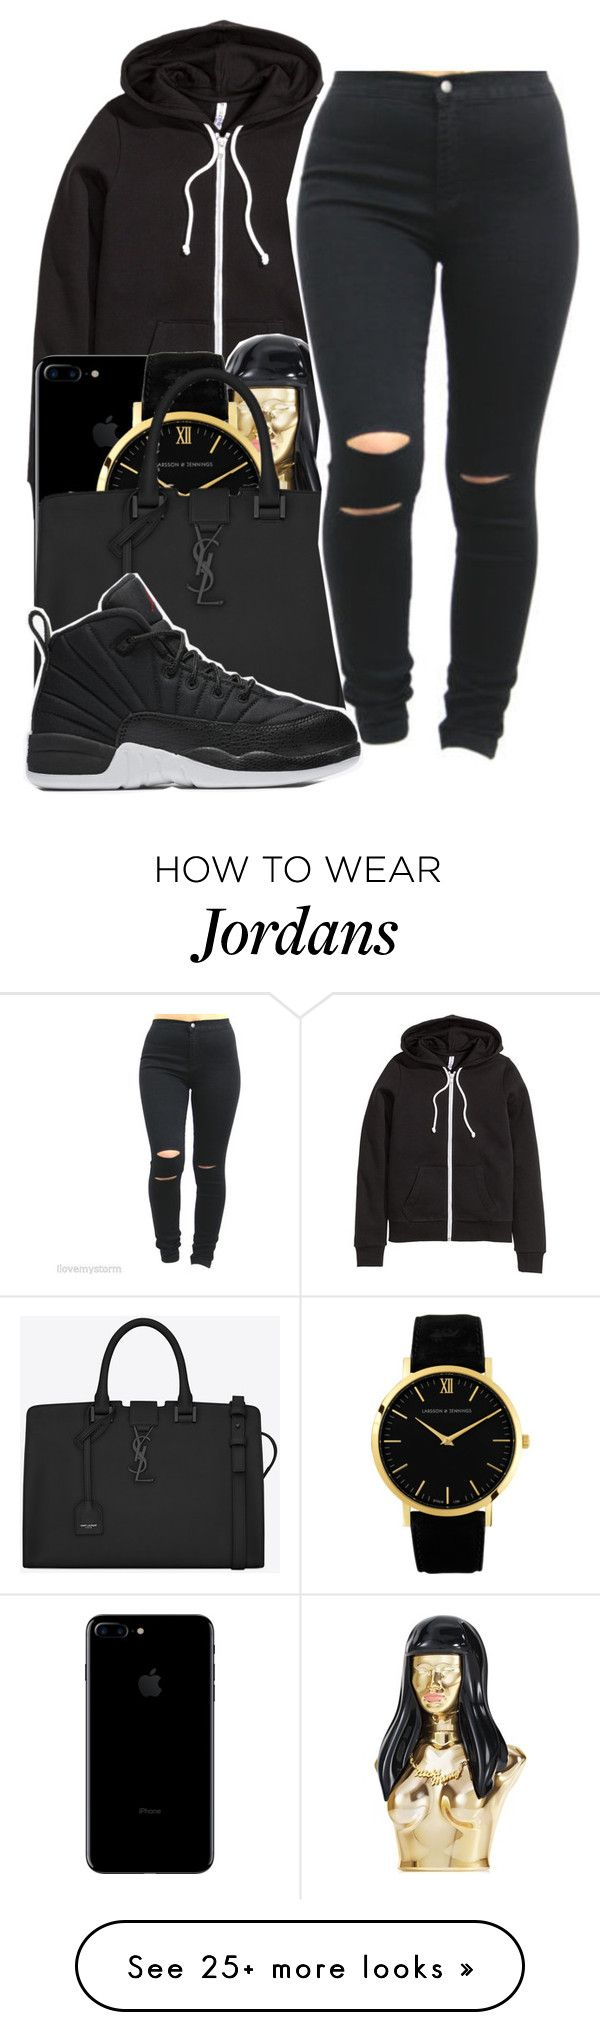 """""""Tell the doctor imma healthy kid i smoke broccoli"""" by maiyaxbabyyy on Polyvore featuring H&M, Nicki Minaj, Larsson & Jennings, Yves Saint Laurent and NIKE"""